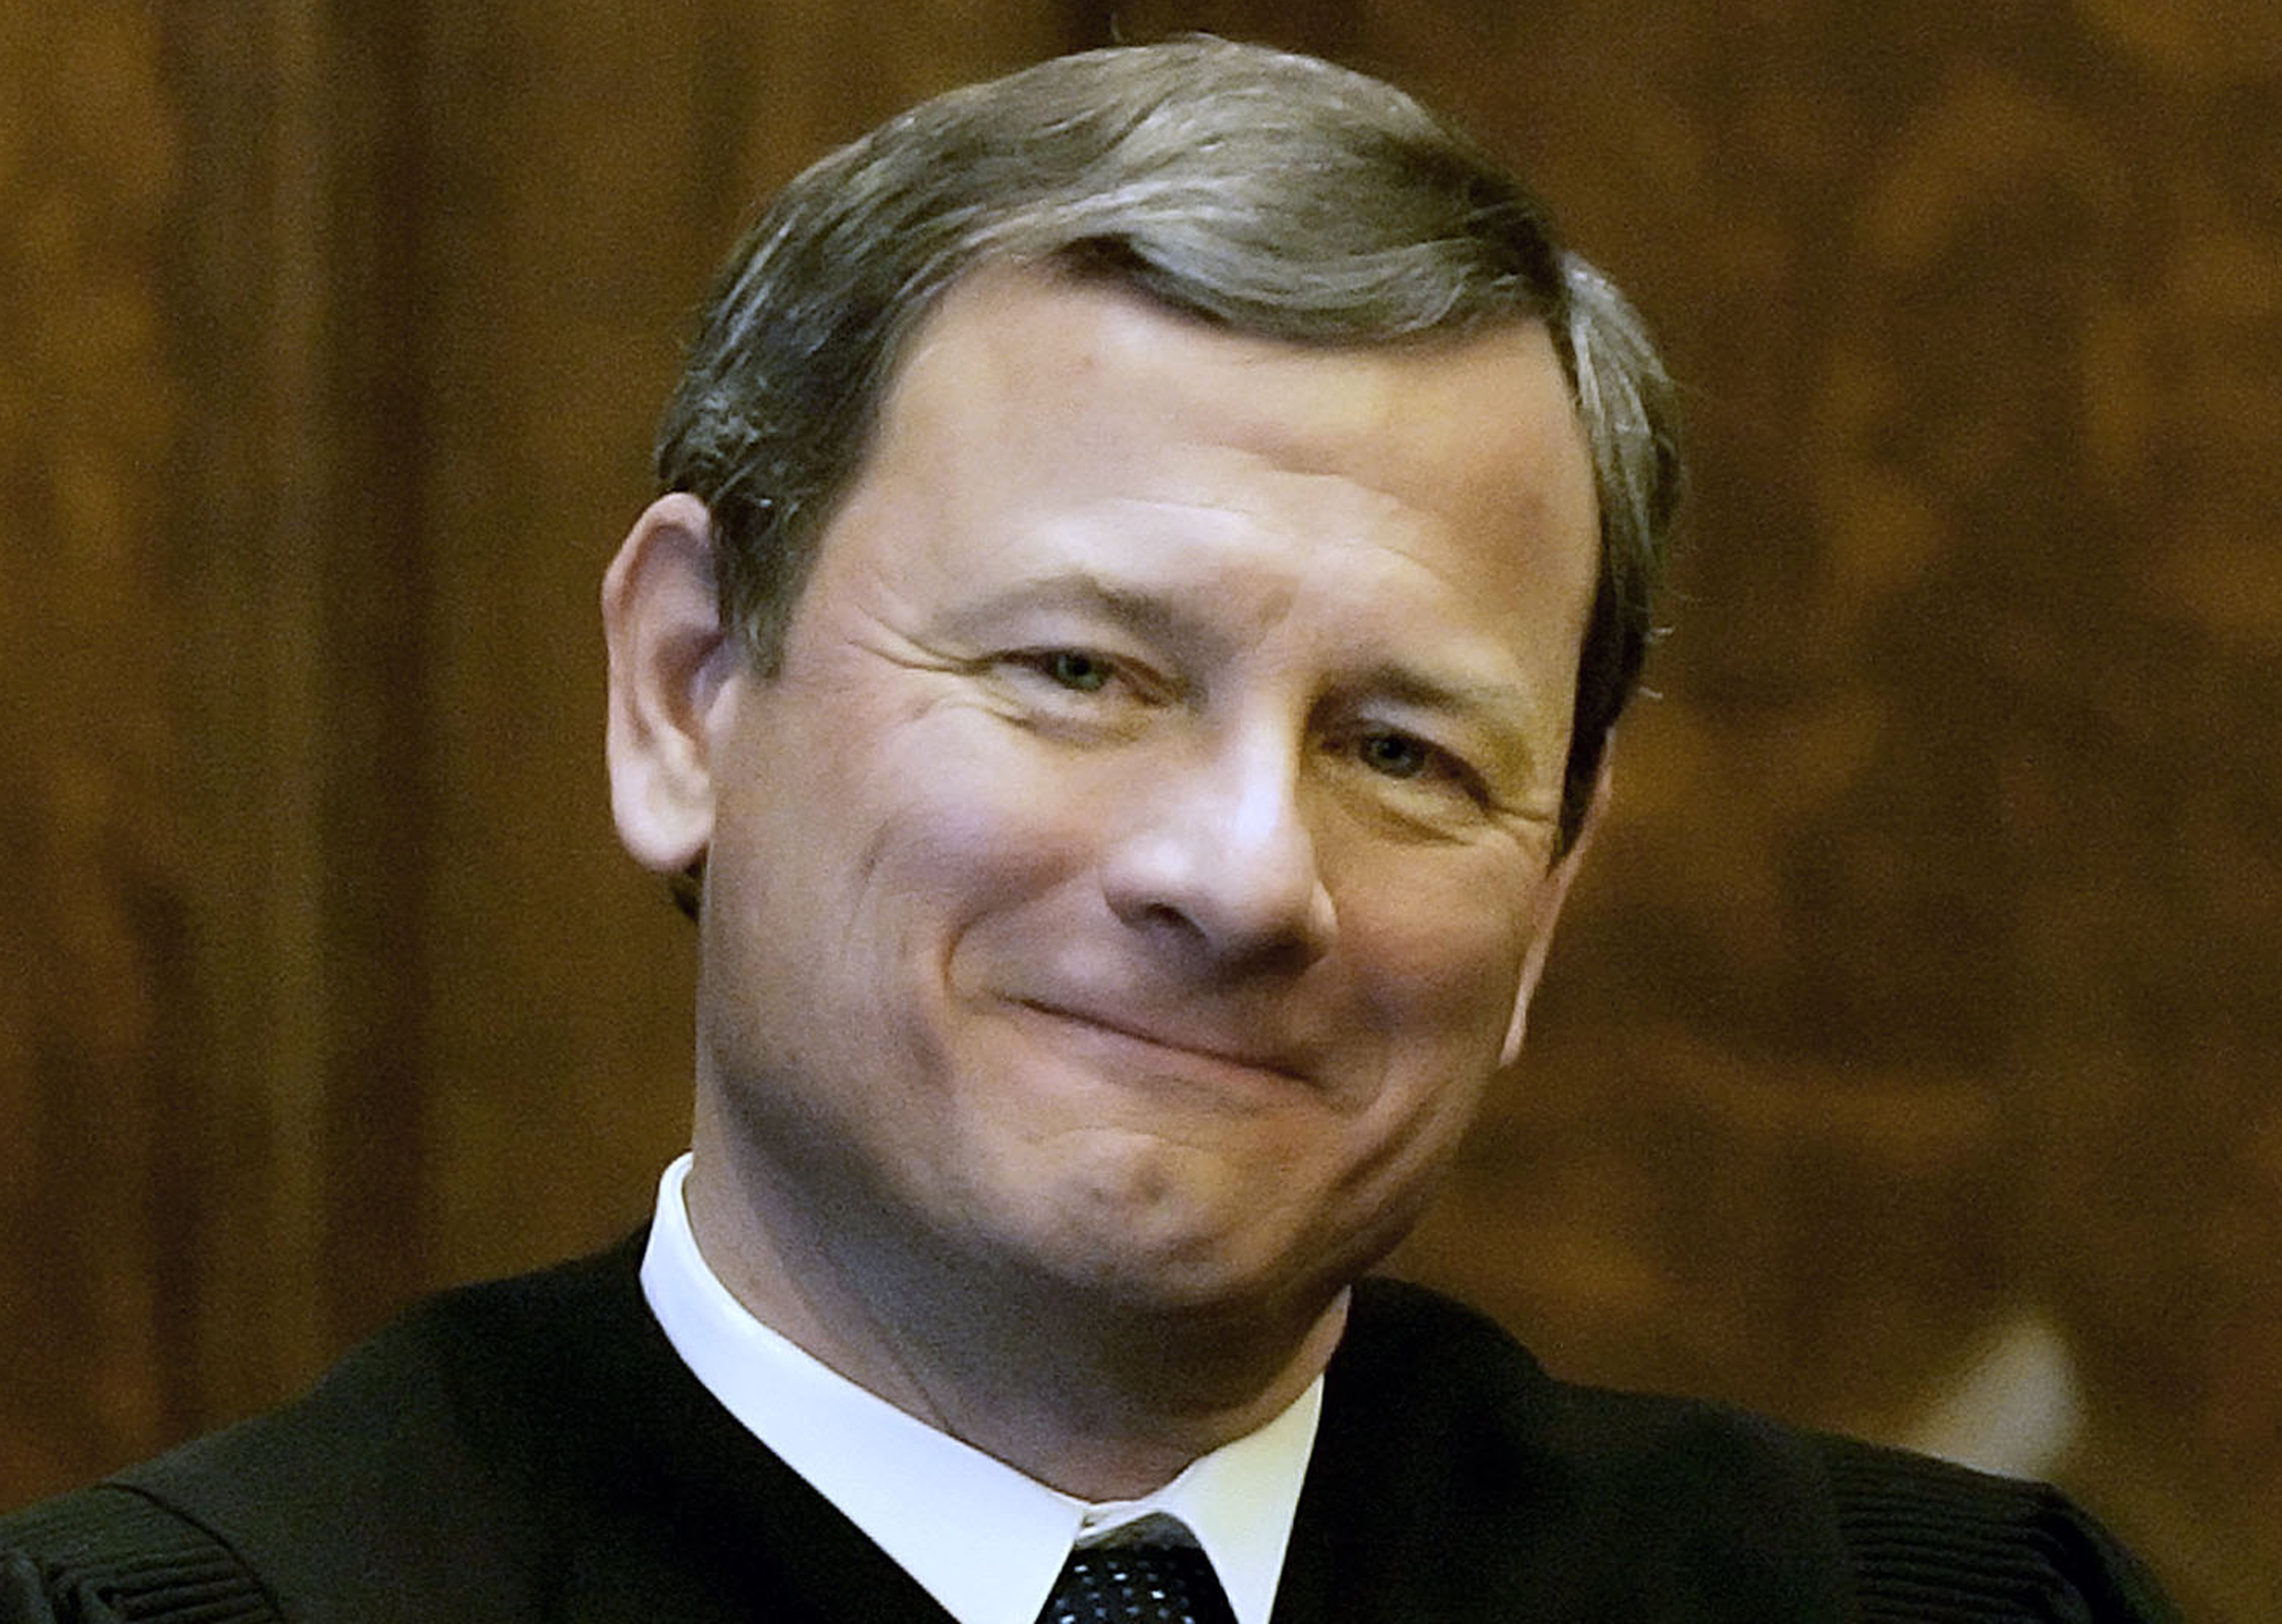 Chief Justice John G. Roberts, Jr., has overseen a shift in the way the Supreme Court approaches cases.